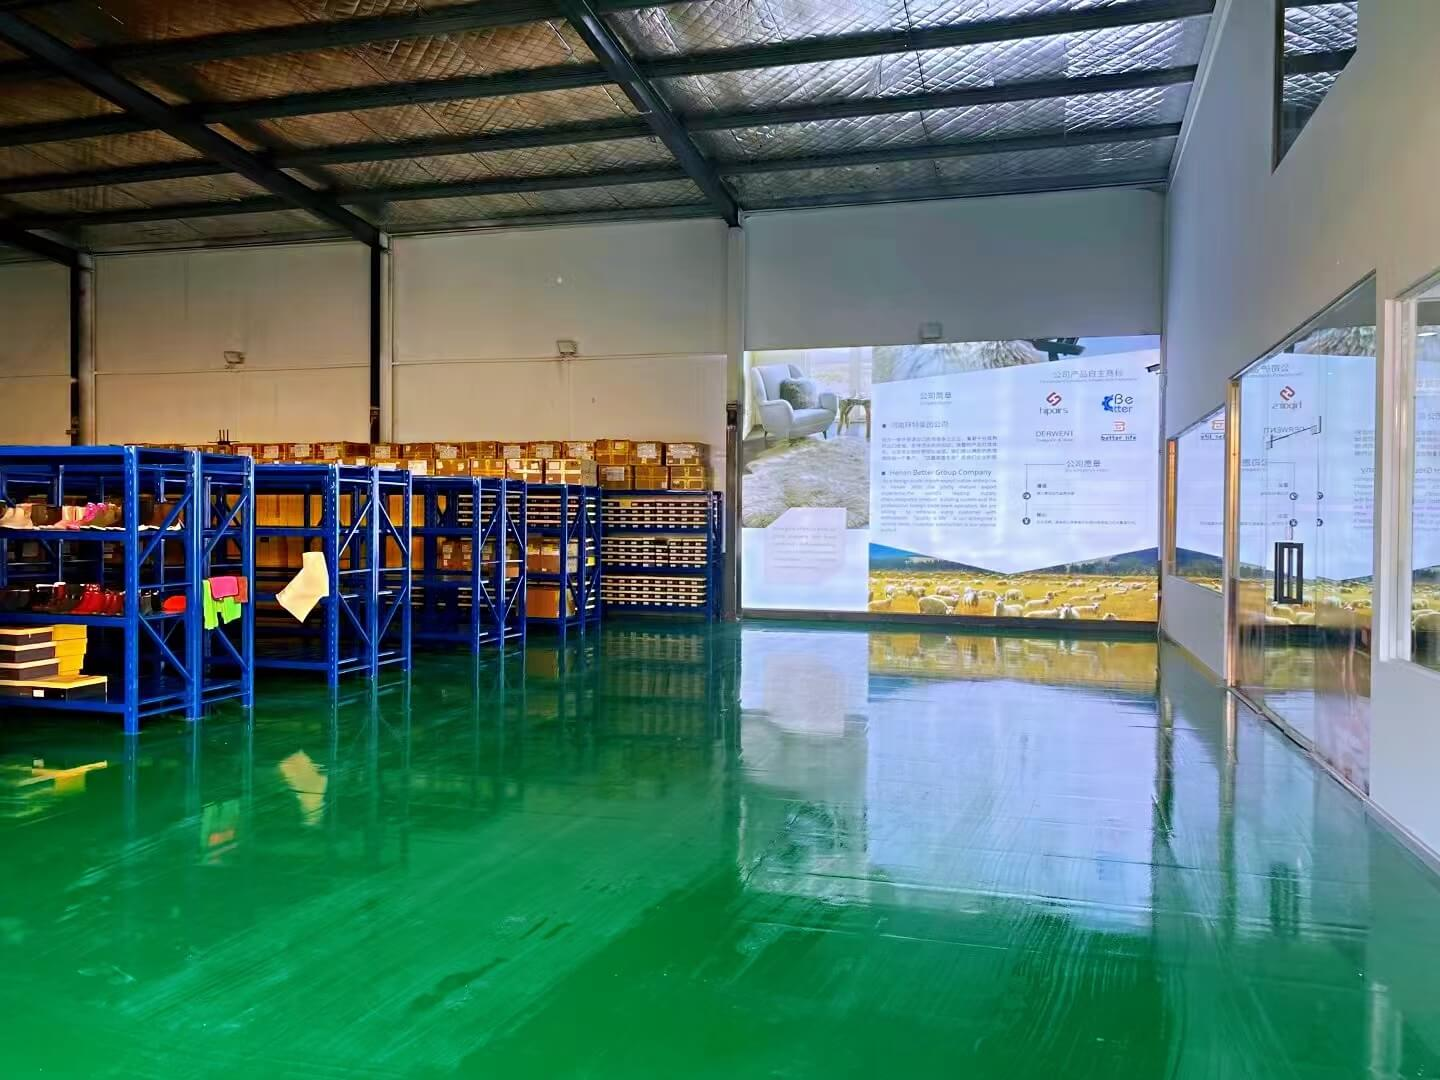 may 2021 meng zhou jiao zuo he nan province our warehouse moved to a new address3